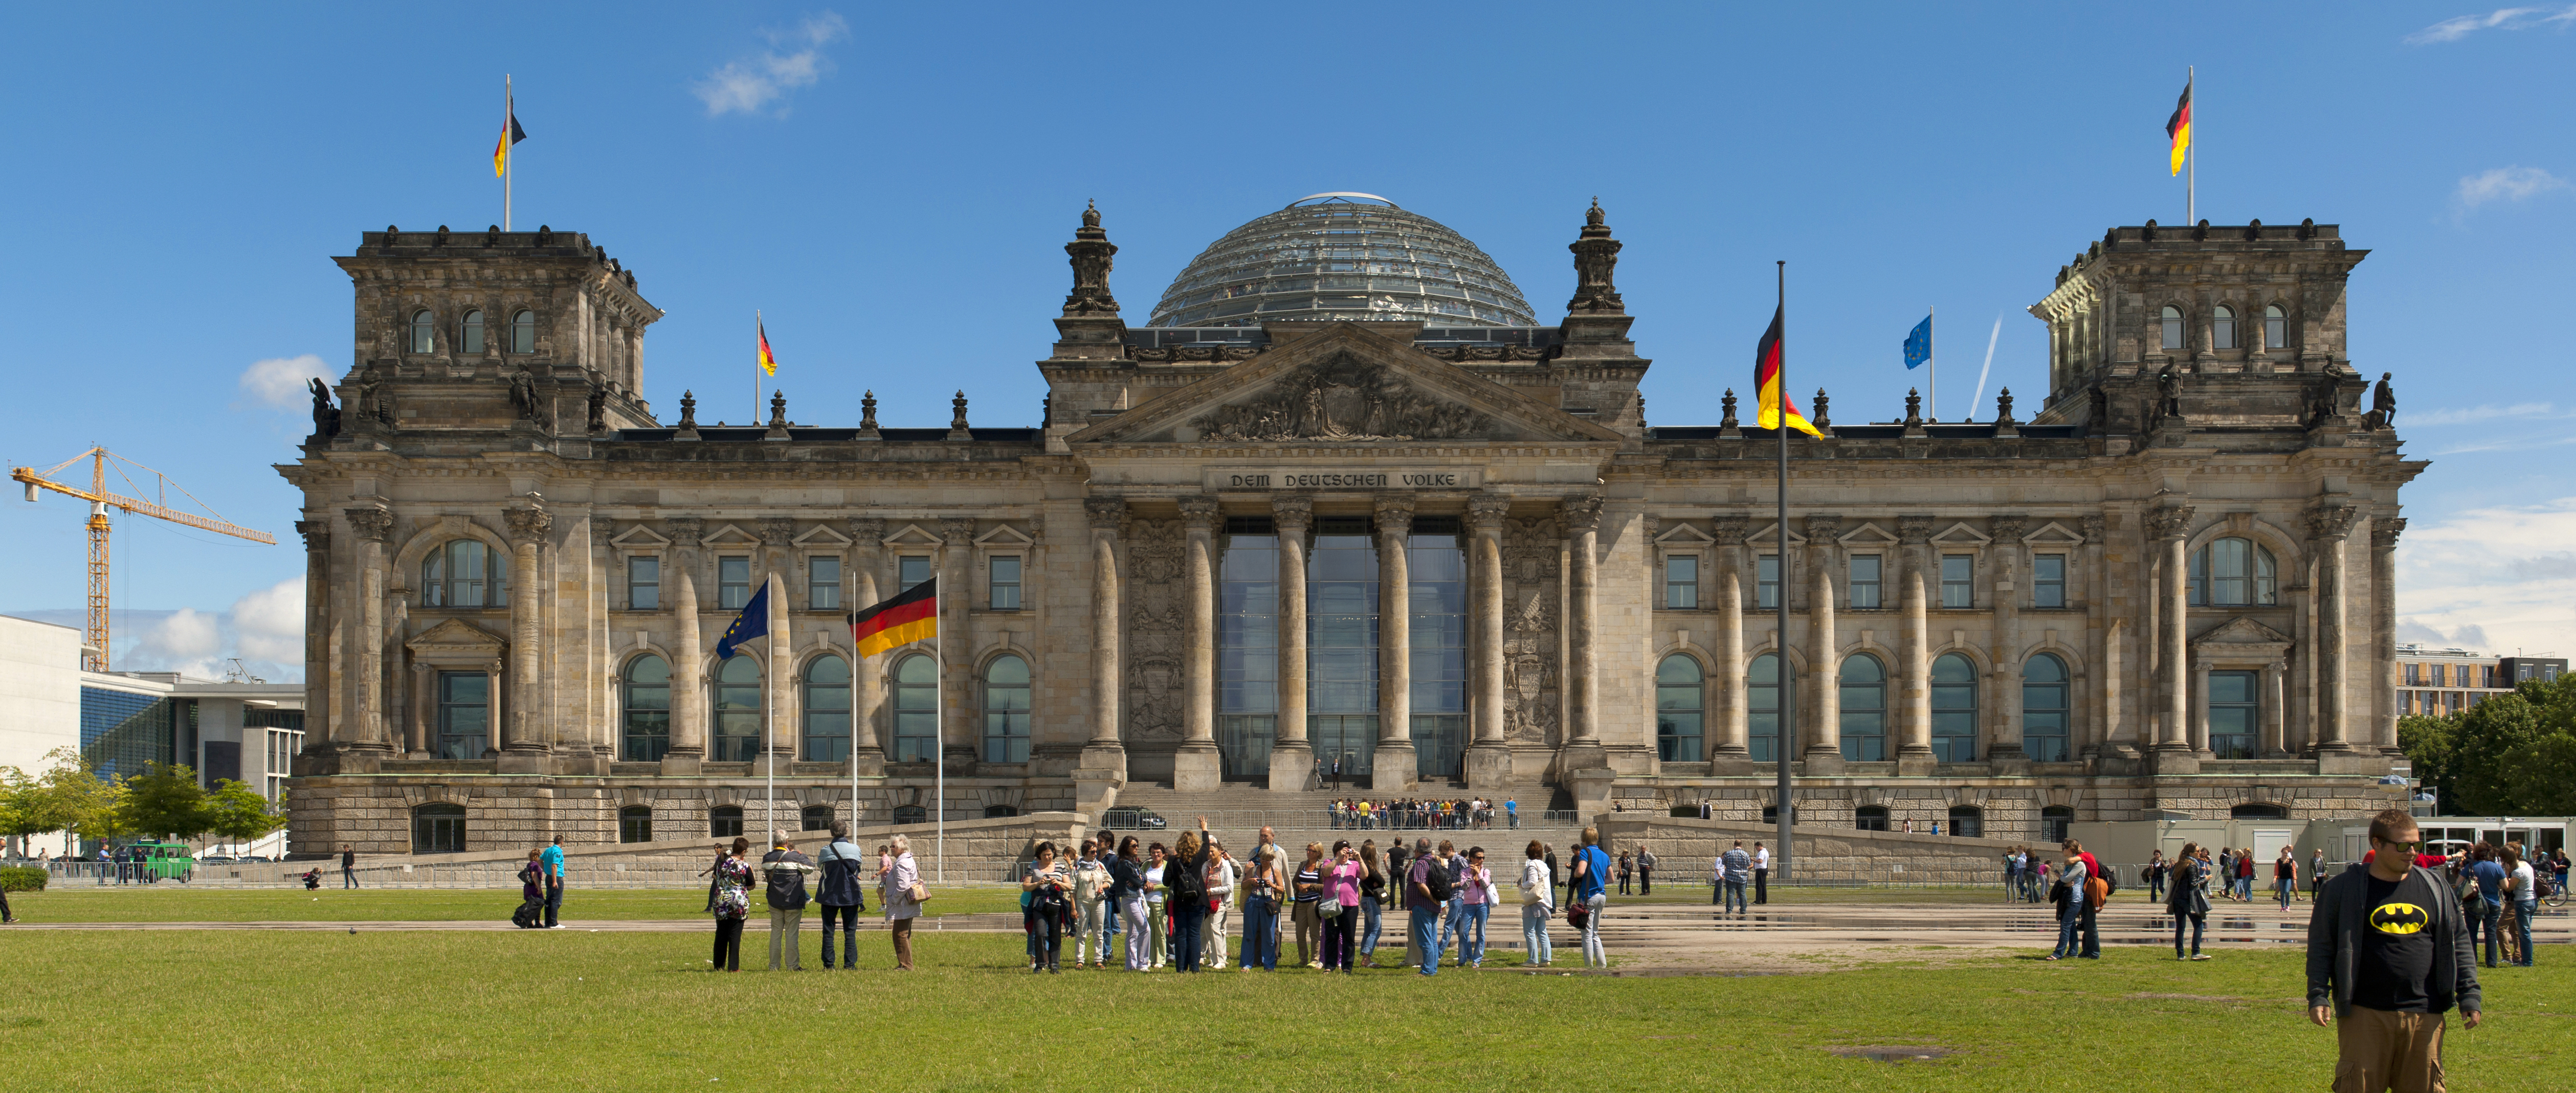 reichstag at berlin city - photo #6